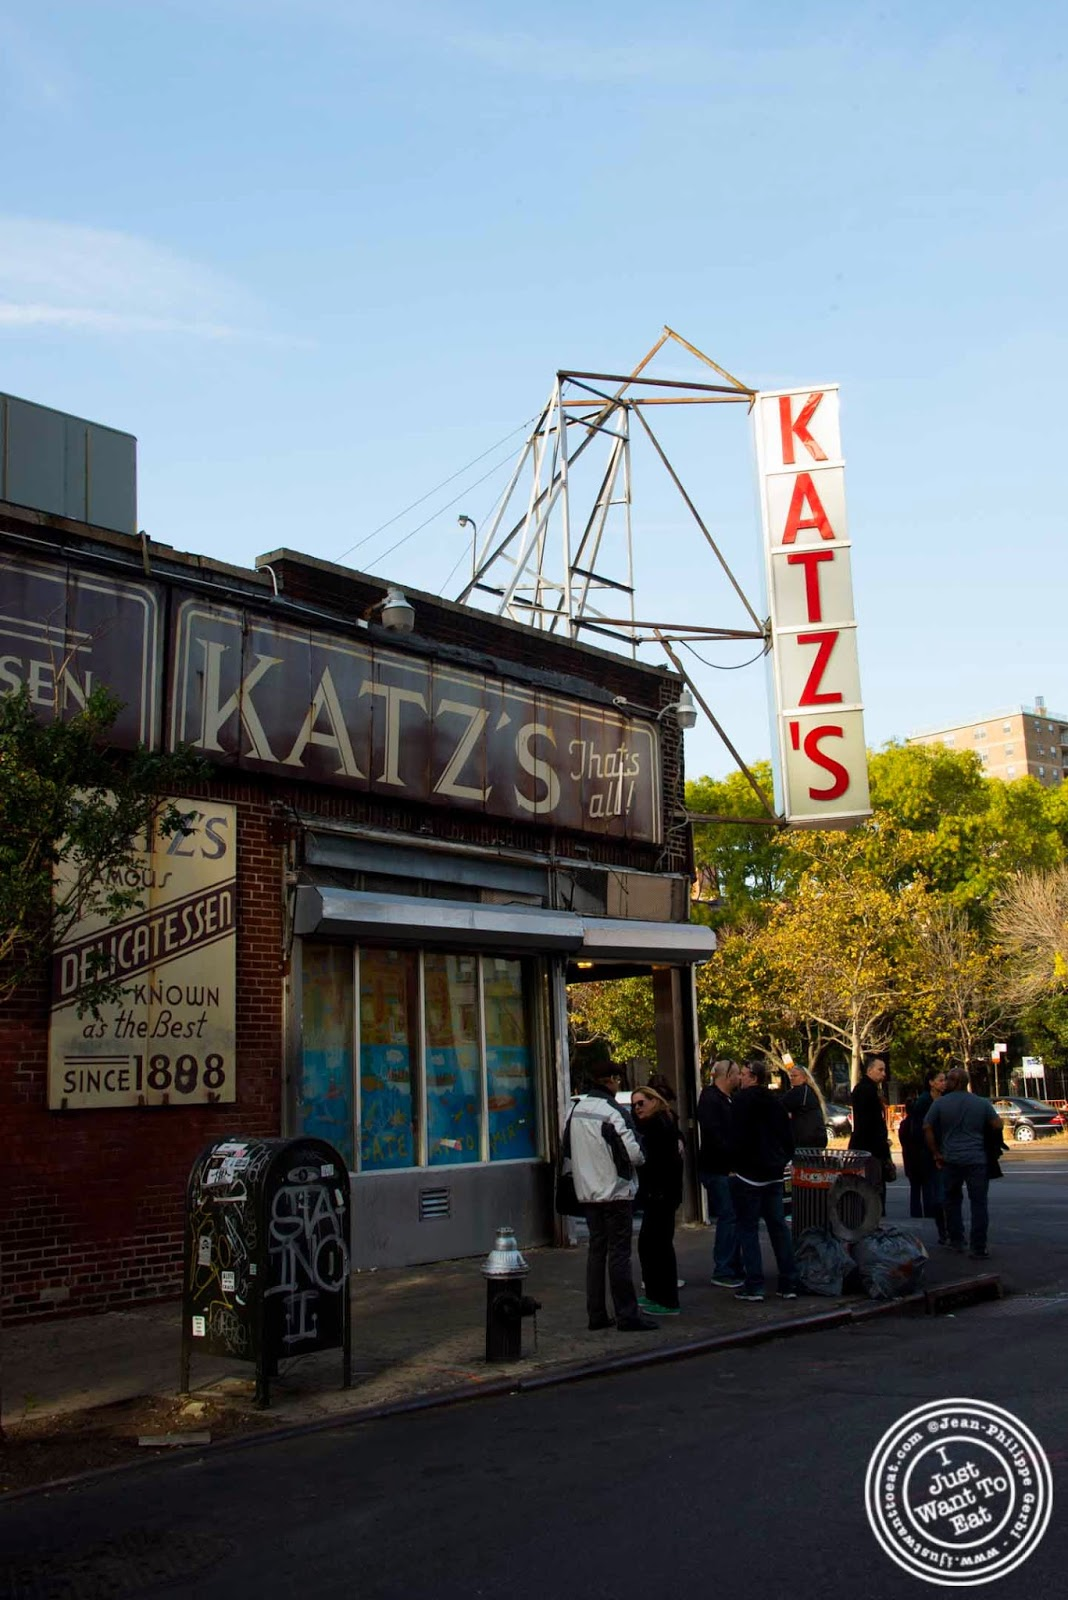 image of Katz's Deli in NYC, New York